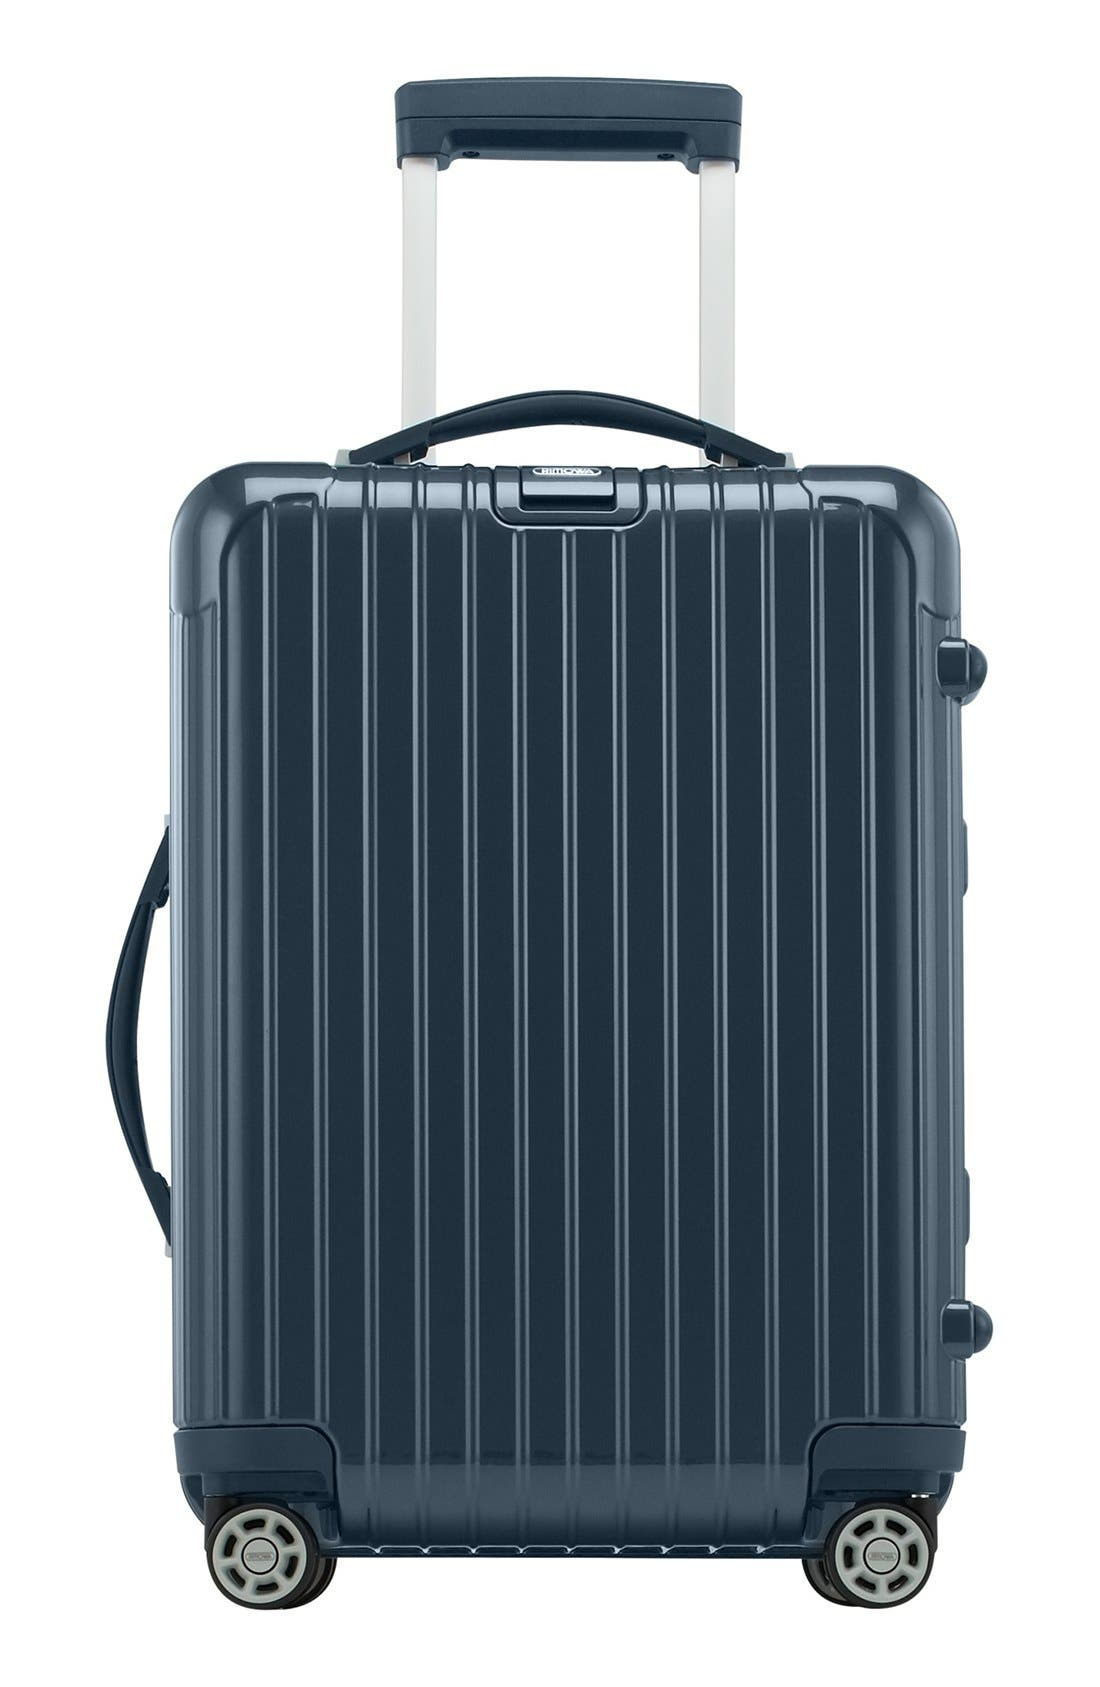 RIMOWA Salsa 22-Inch Deluxe Cabin Multiwheel® Carry-On